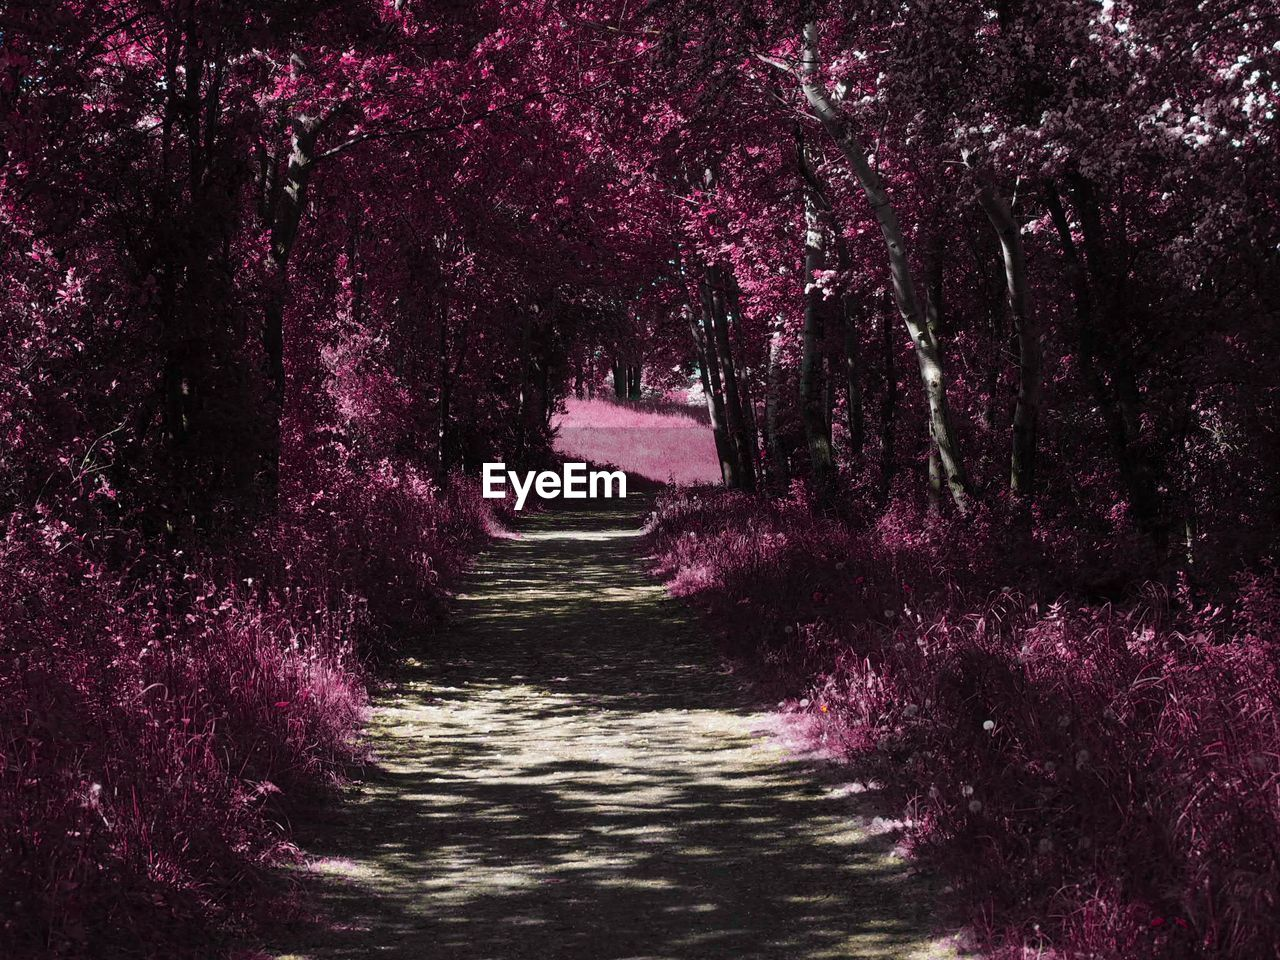 plant, beauty in nature, pink color, flower, no people, tree, growth, nature, tranquility, direction, tranquil scene, the way forward, scenics - nature, flowering plant, purple, day, land, forest, outdoors, water, diminishing perspective